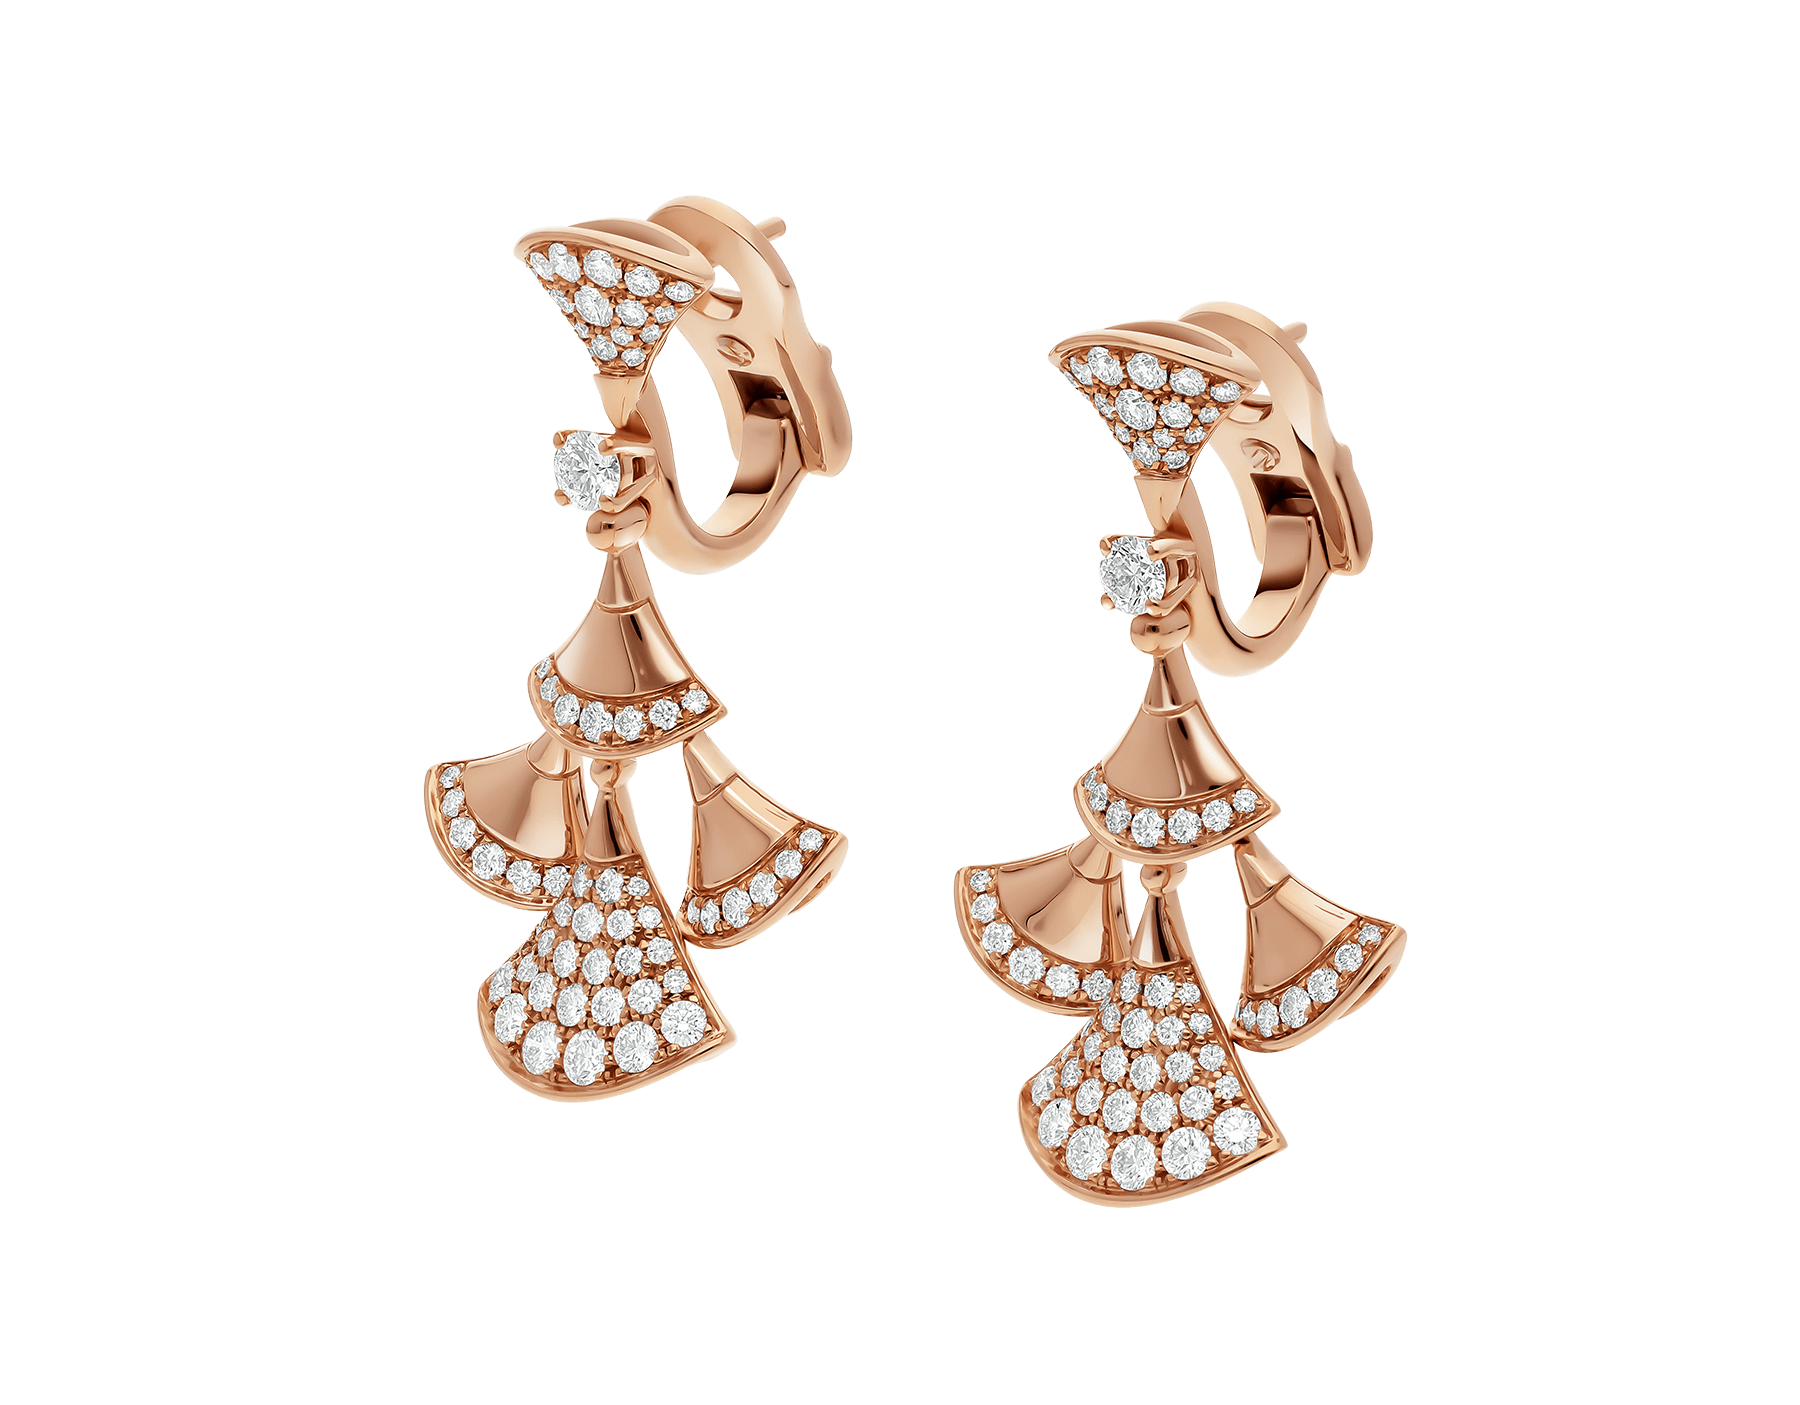 DIVAS' DREAM earrings in 18 kt rose gold set with a diamond and pavé diamonds. 352810 image 2